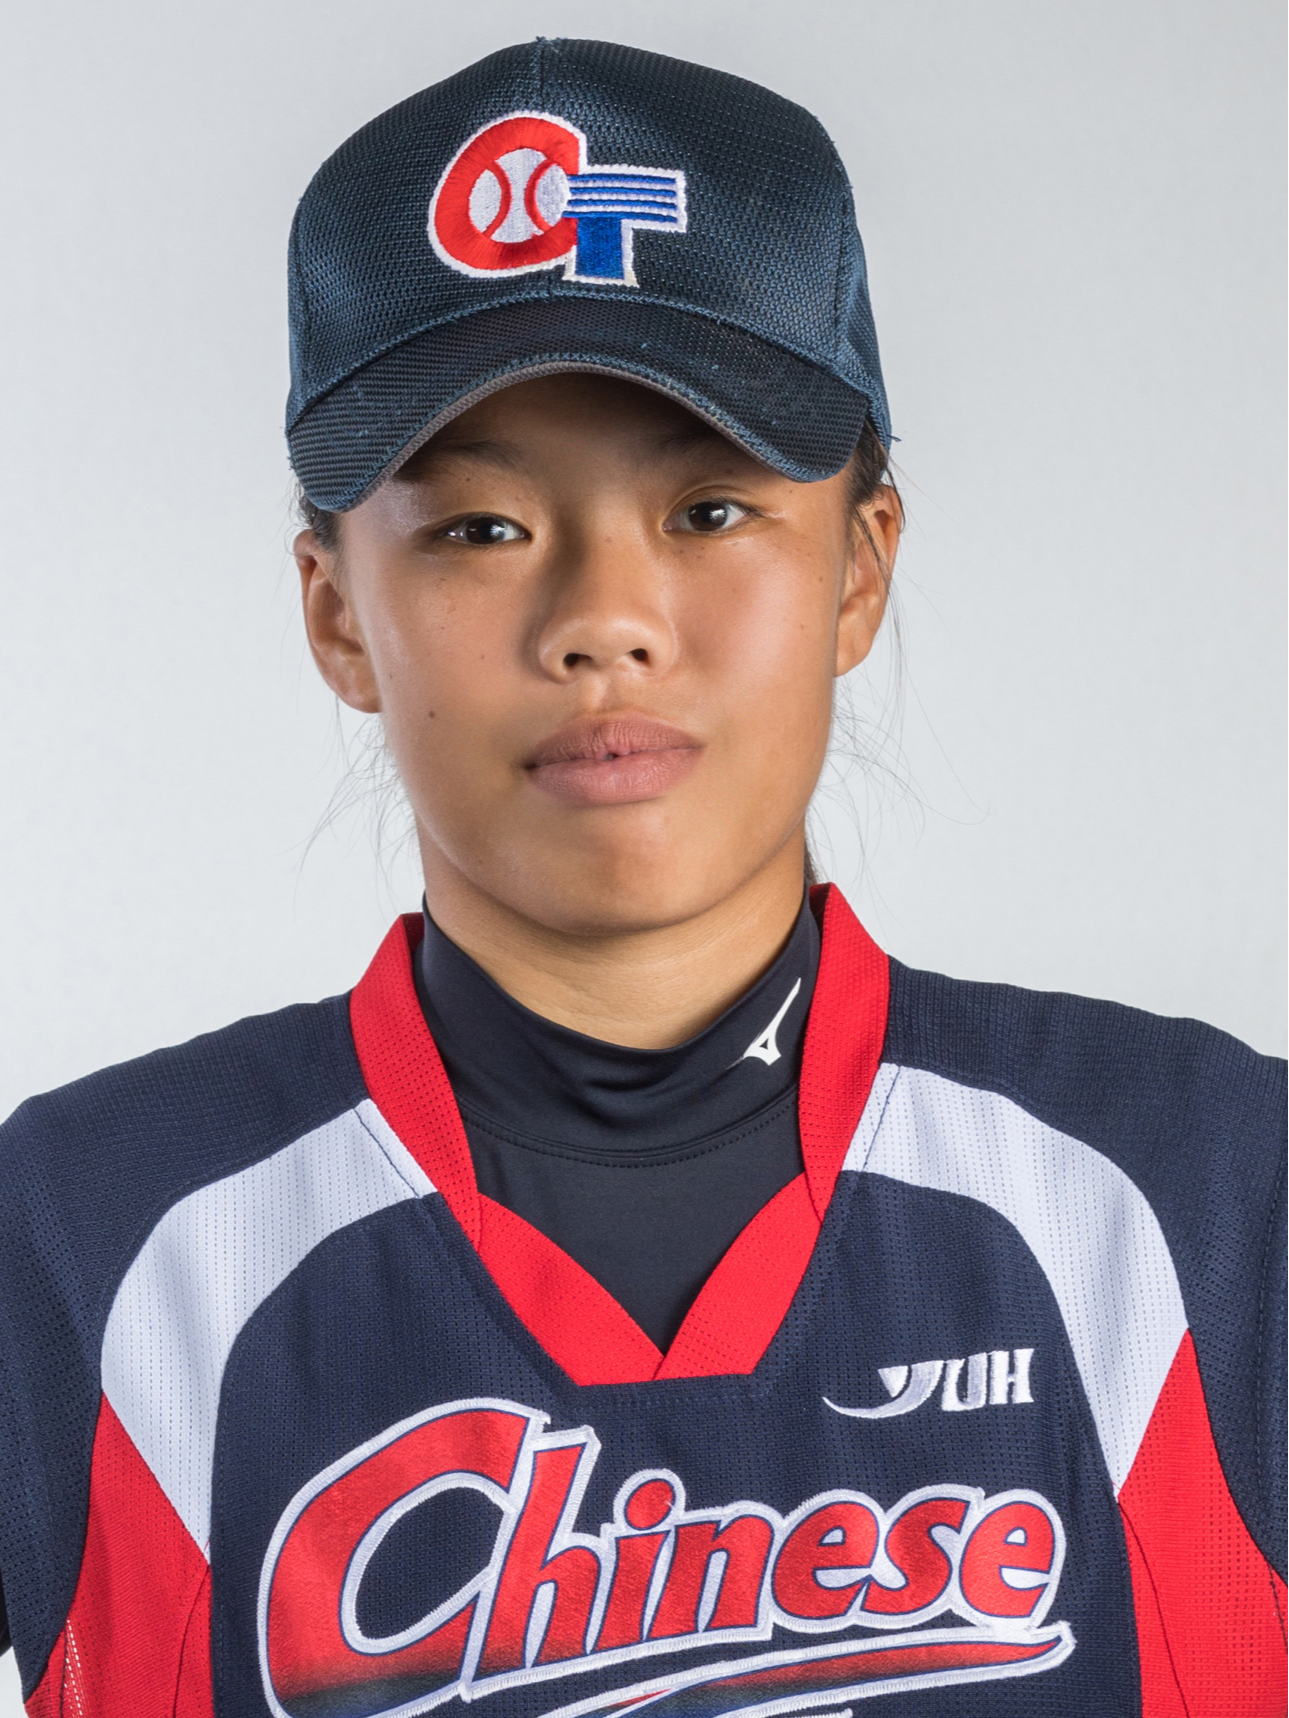 U-19 Women's Softball World Cup 2019